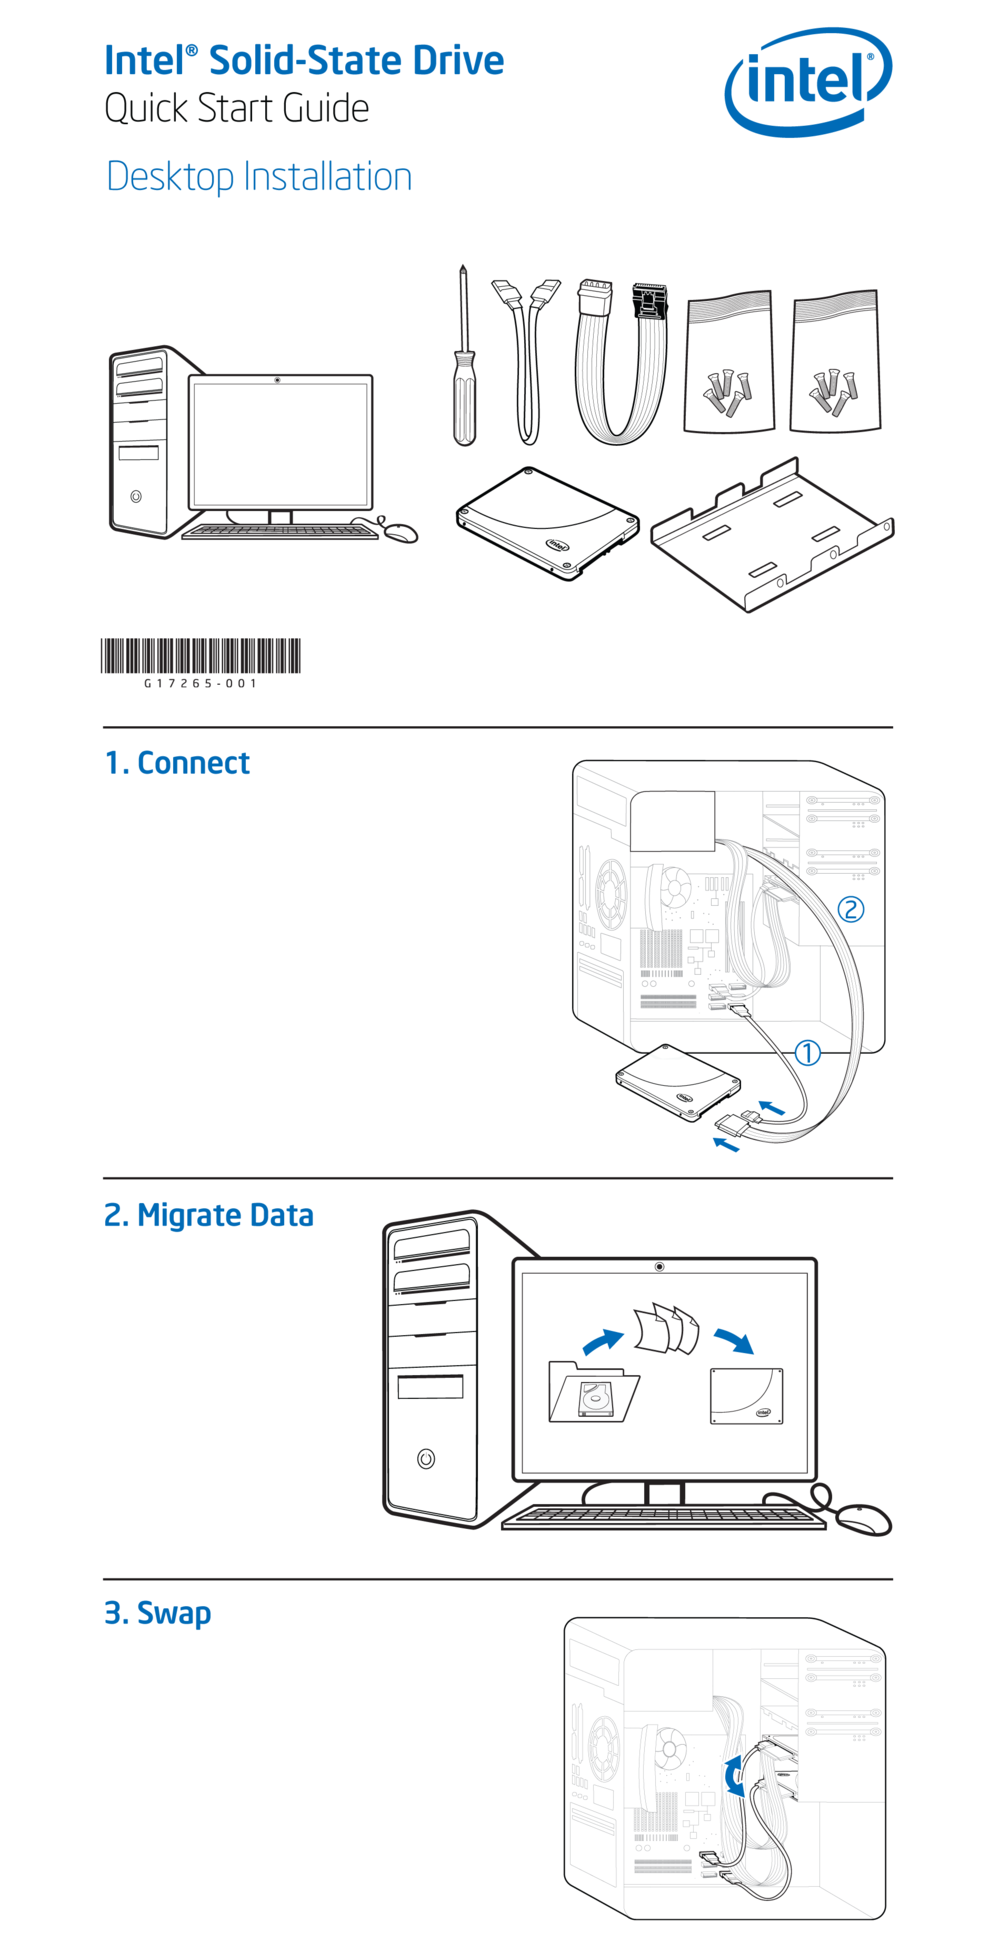 Intel-SSD-QuickStartGuide-FINAL-2.png